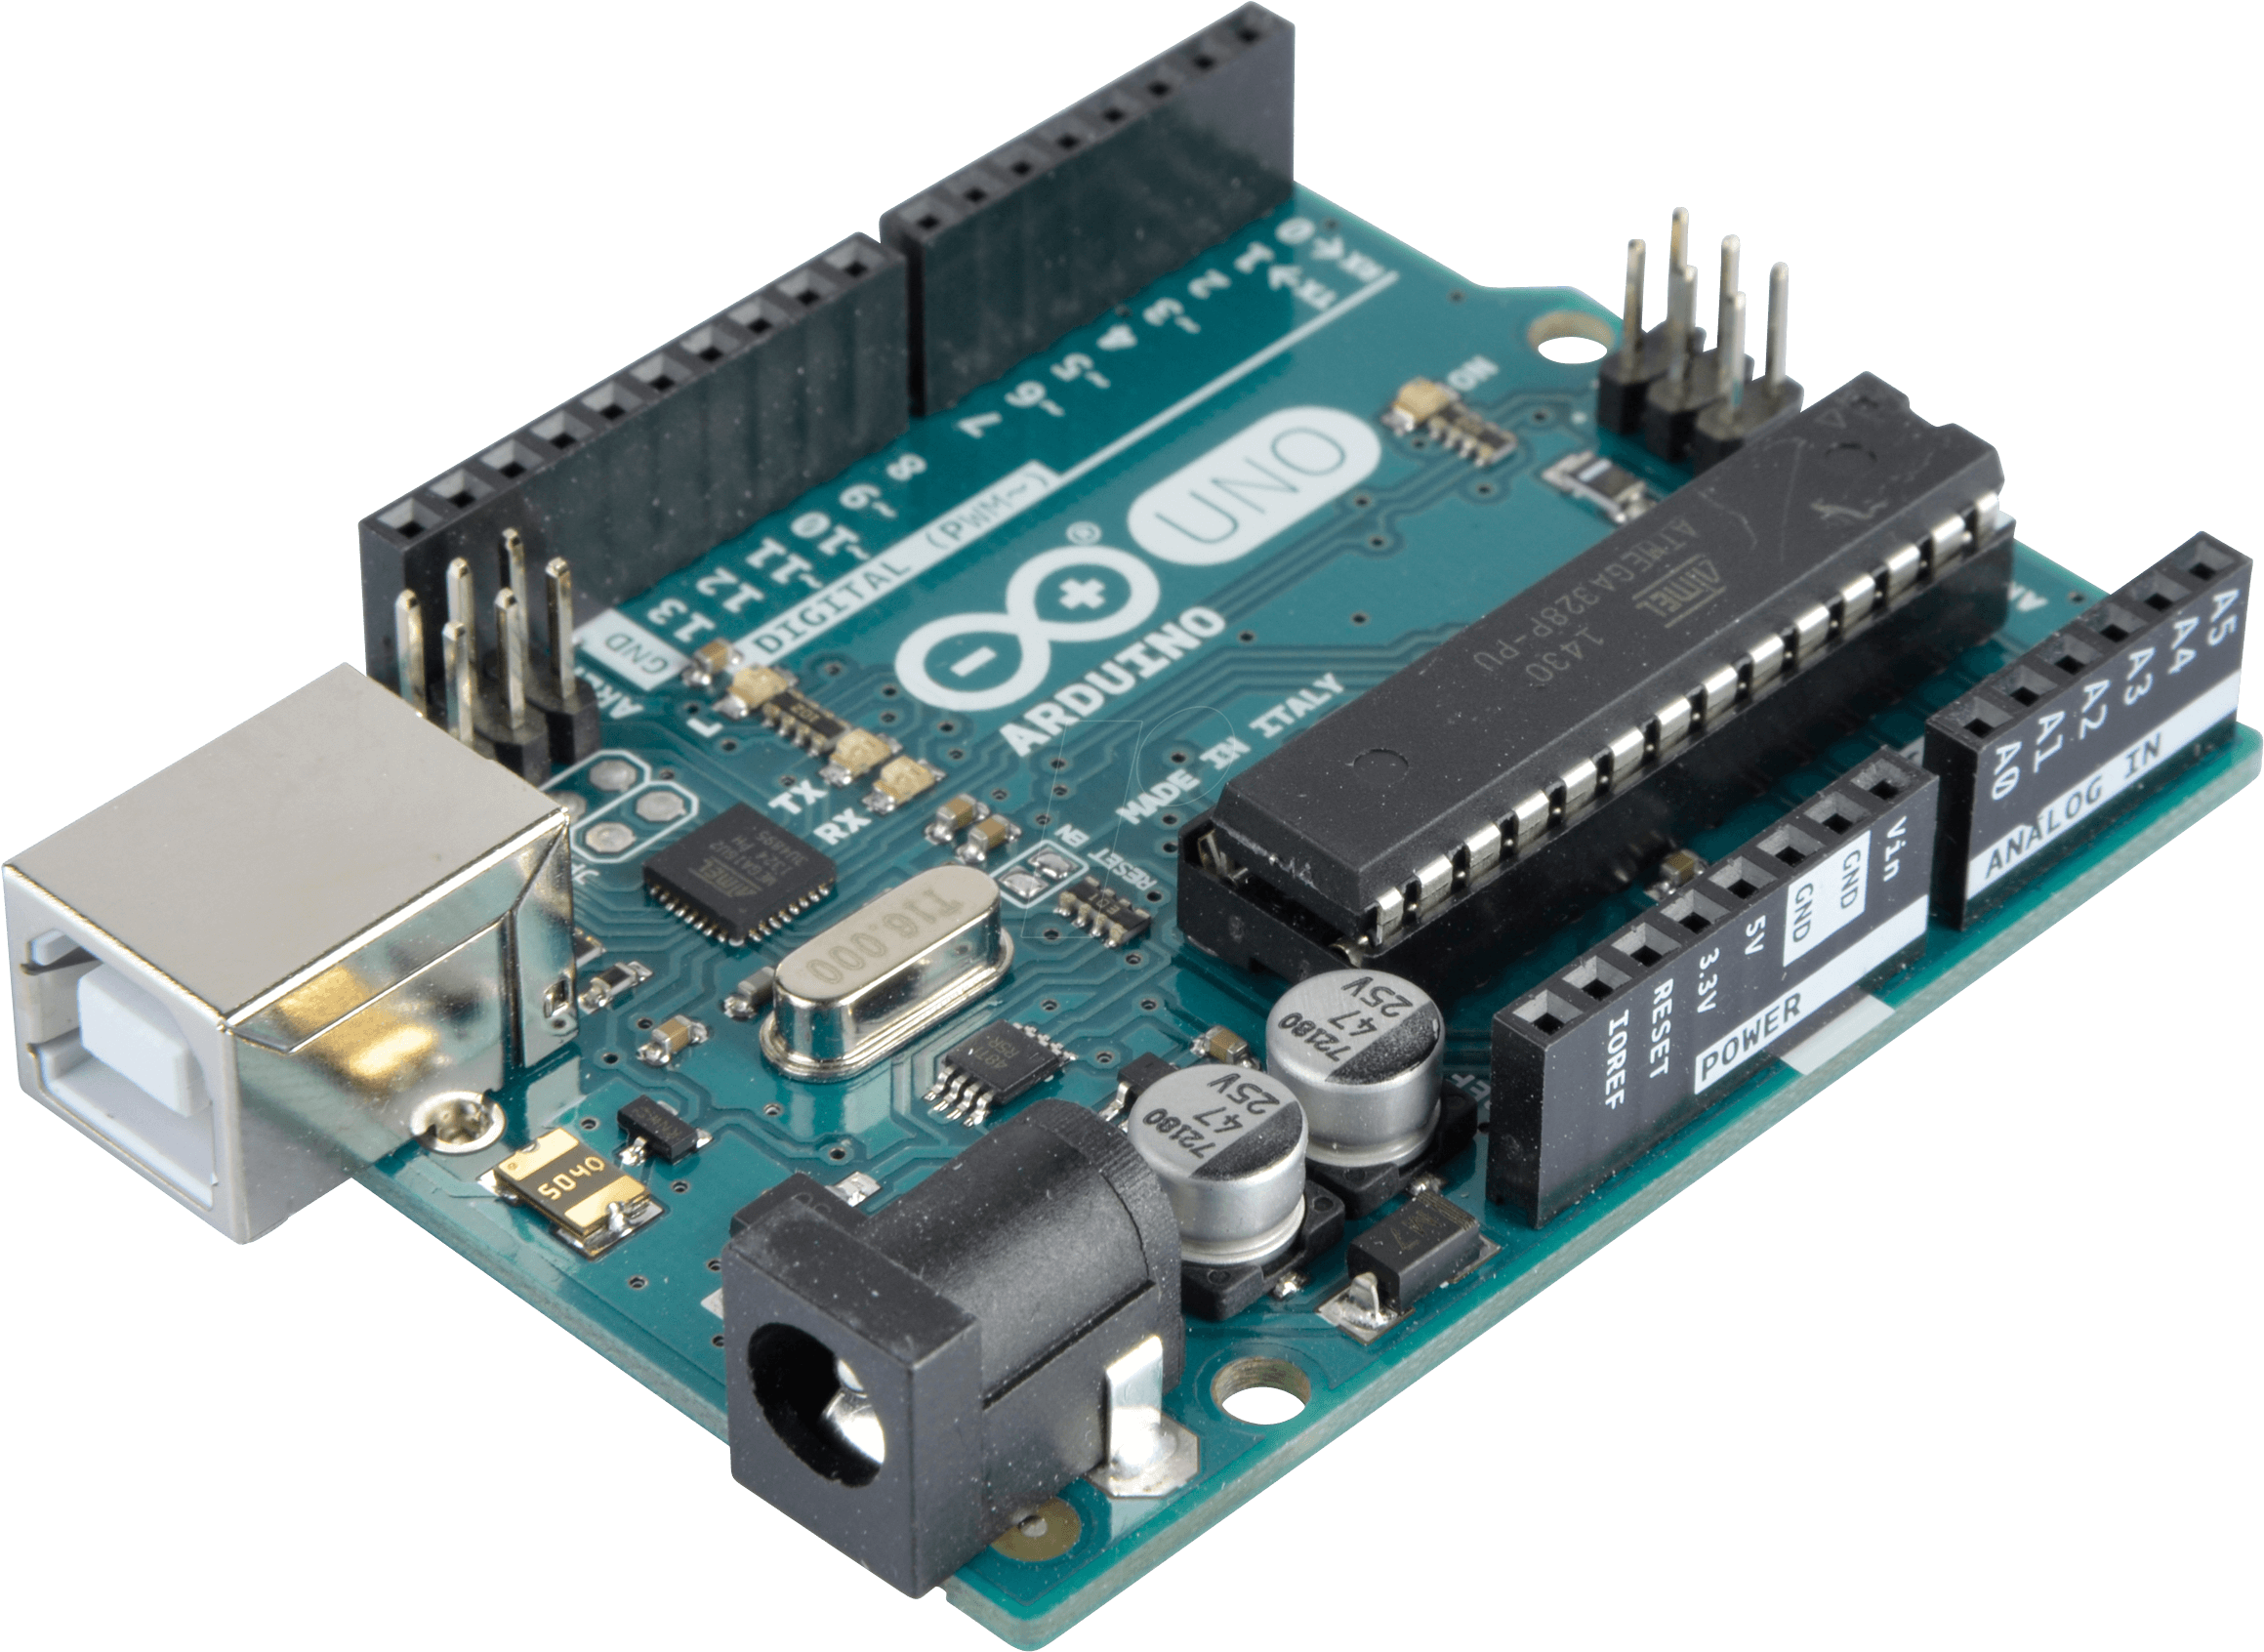 HD Arduino Uno Png Transparent Background.